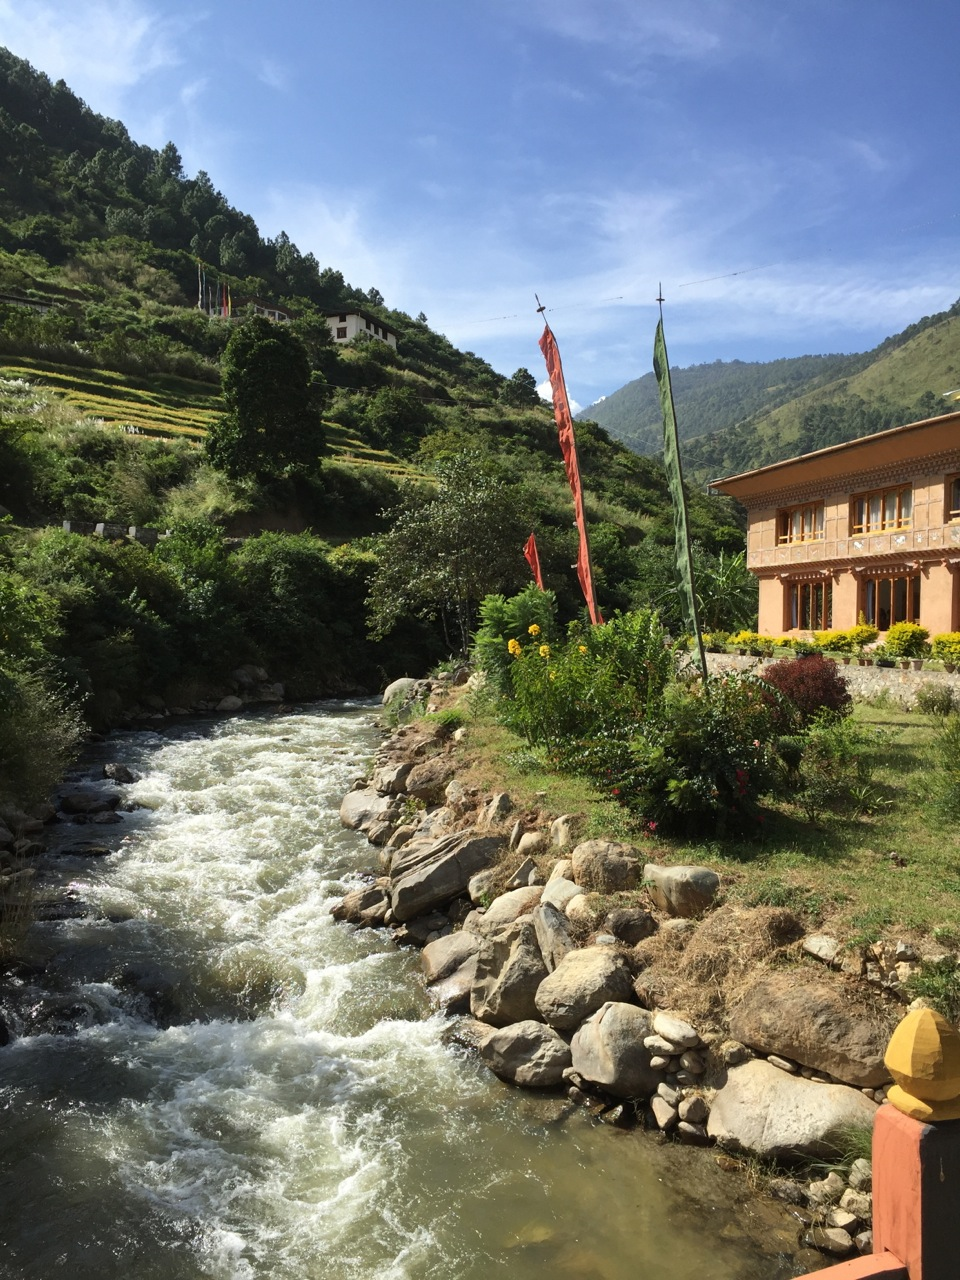 Bhutan opened its doors to tourism only 40 years ago, and it still requires every tourist to be part of a certified tour group. The government of Bhutan wants to avoid the environmental degradation that Nepal has suffered over the past 50 years due to tourism.